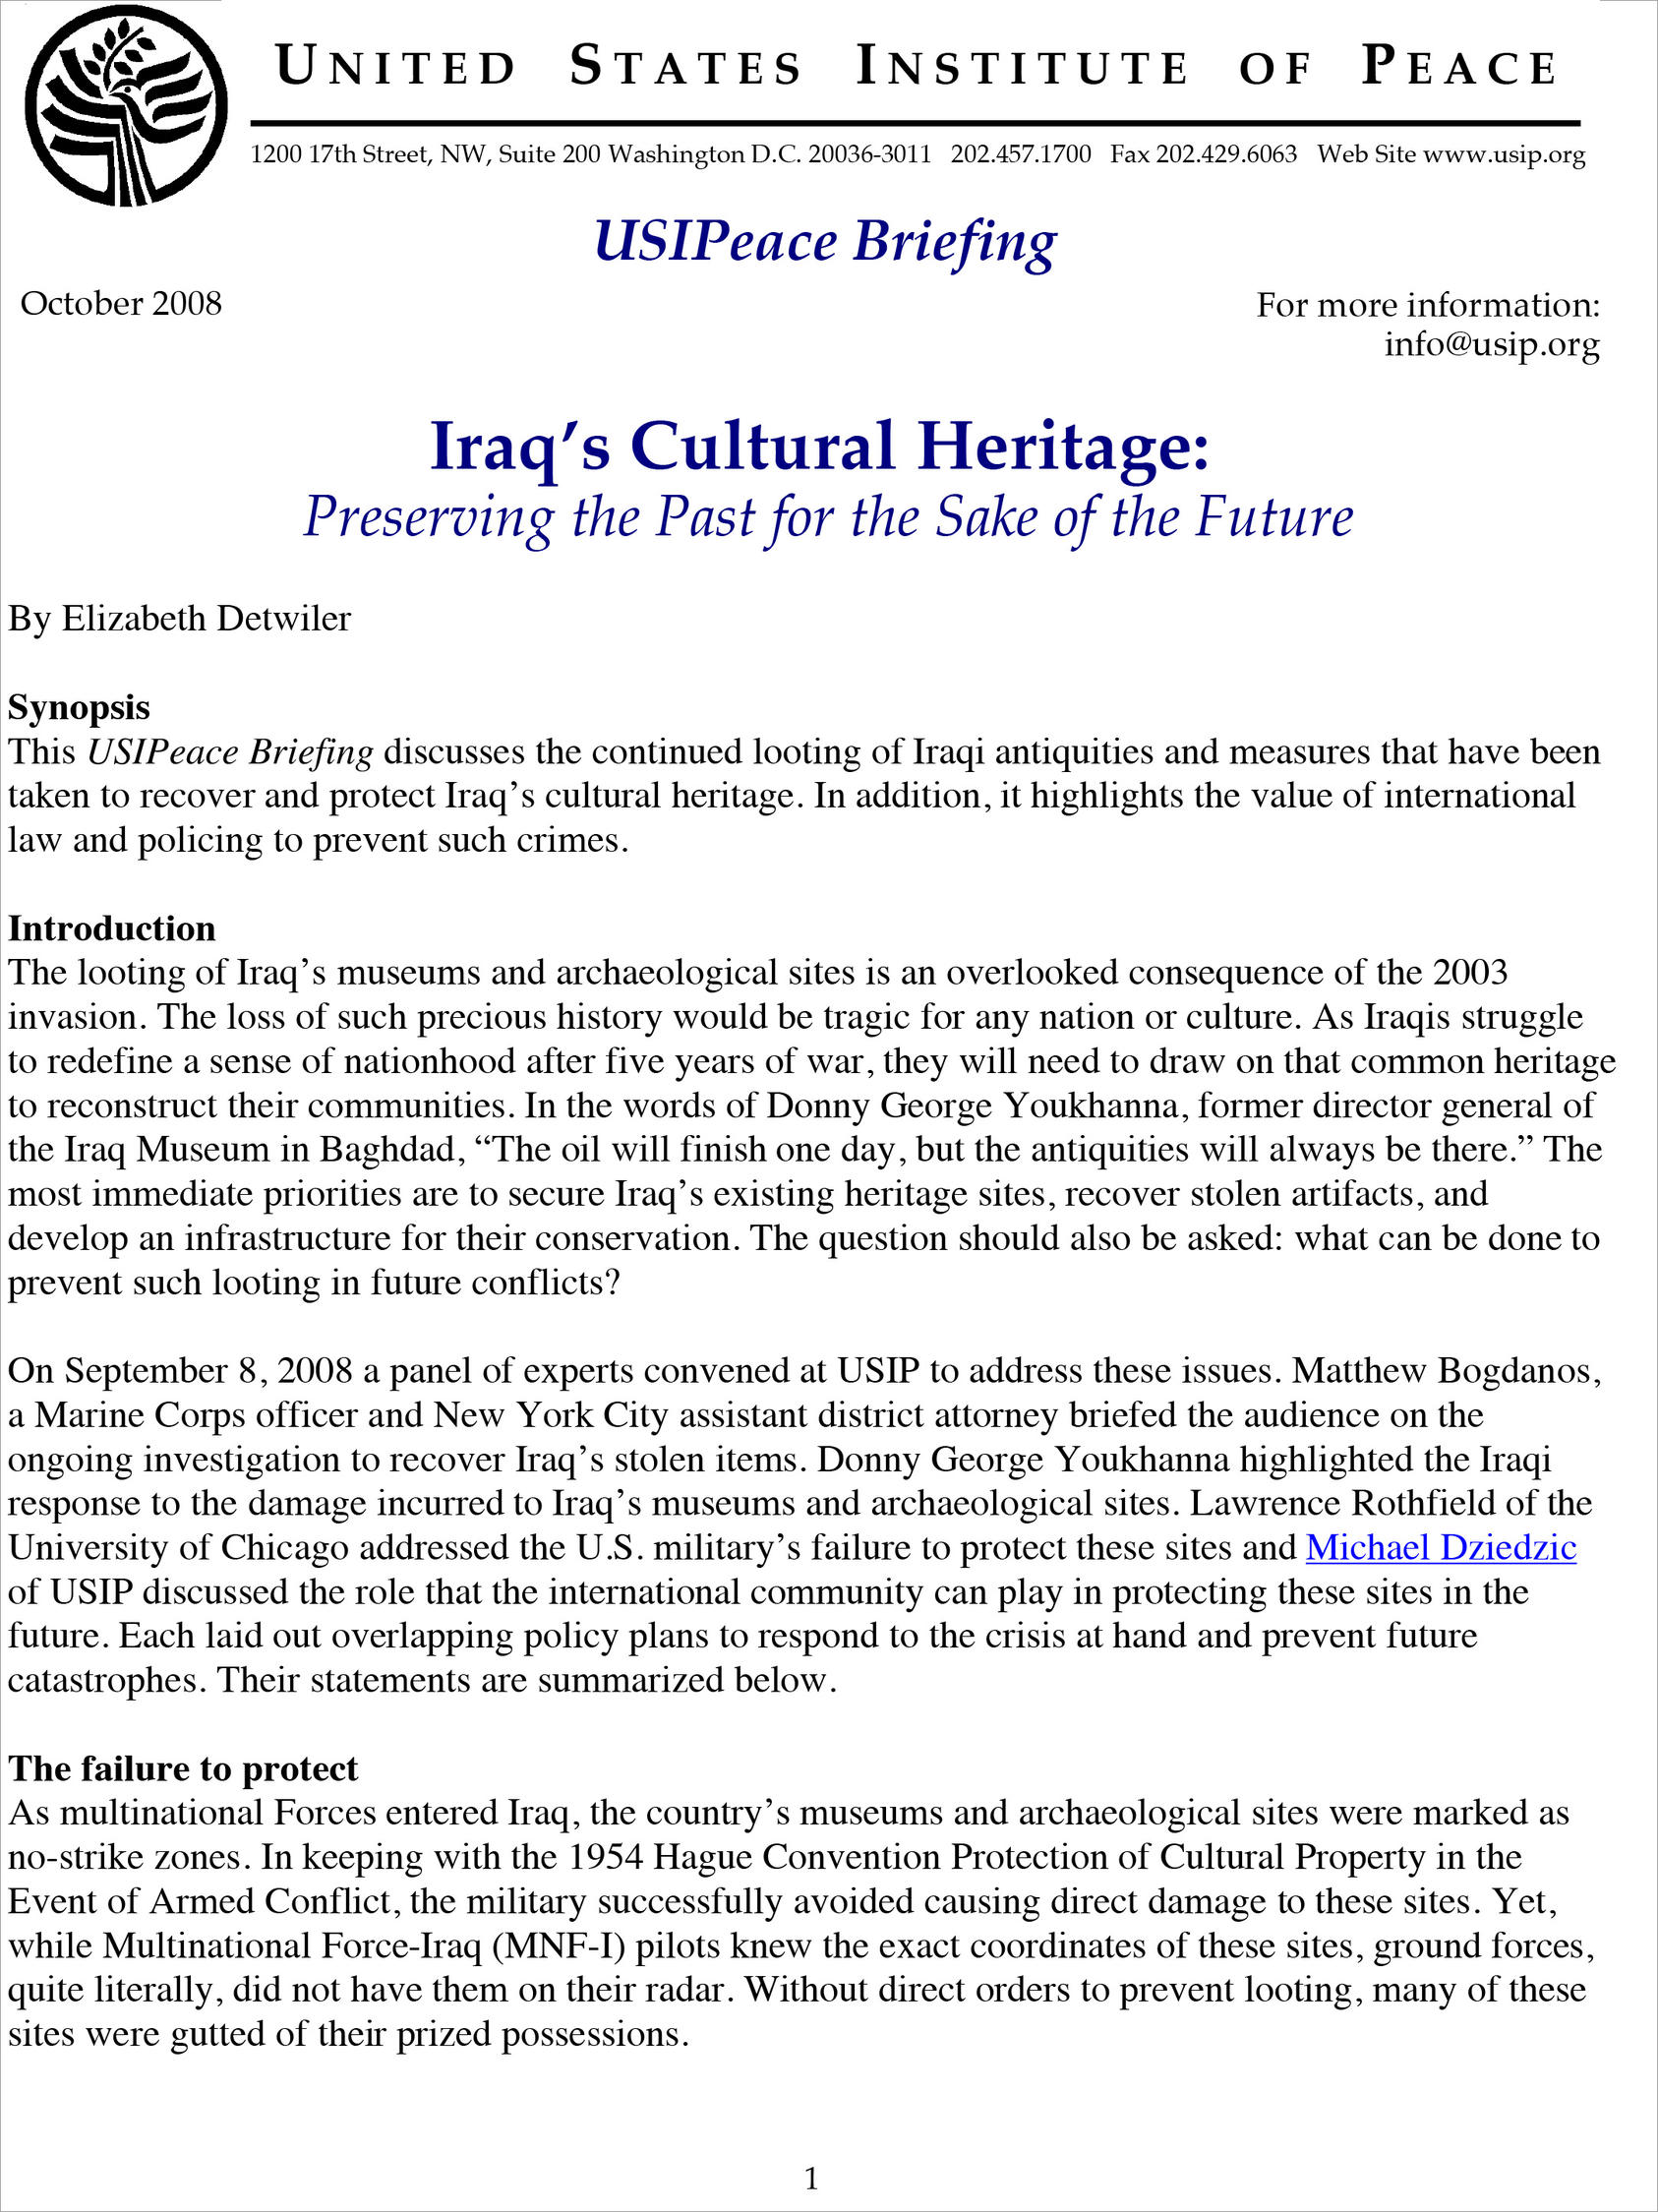 As Iraqis Struggle To Redefine A Sense Of Nationhood After Five Years War They Will Need Draw On That Common Heritage Reconstruct Their